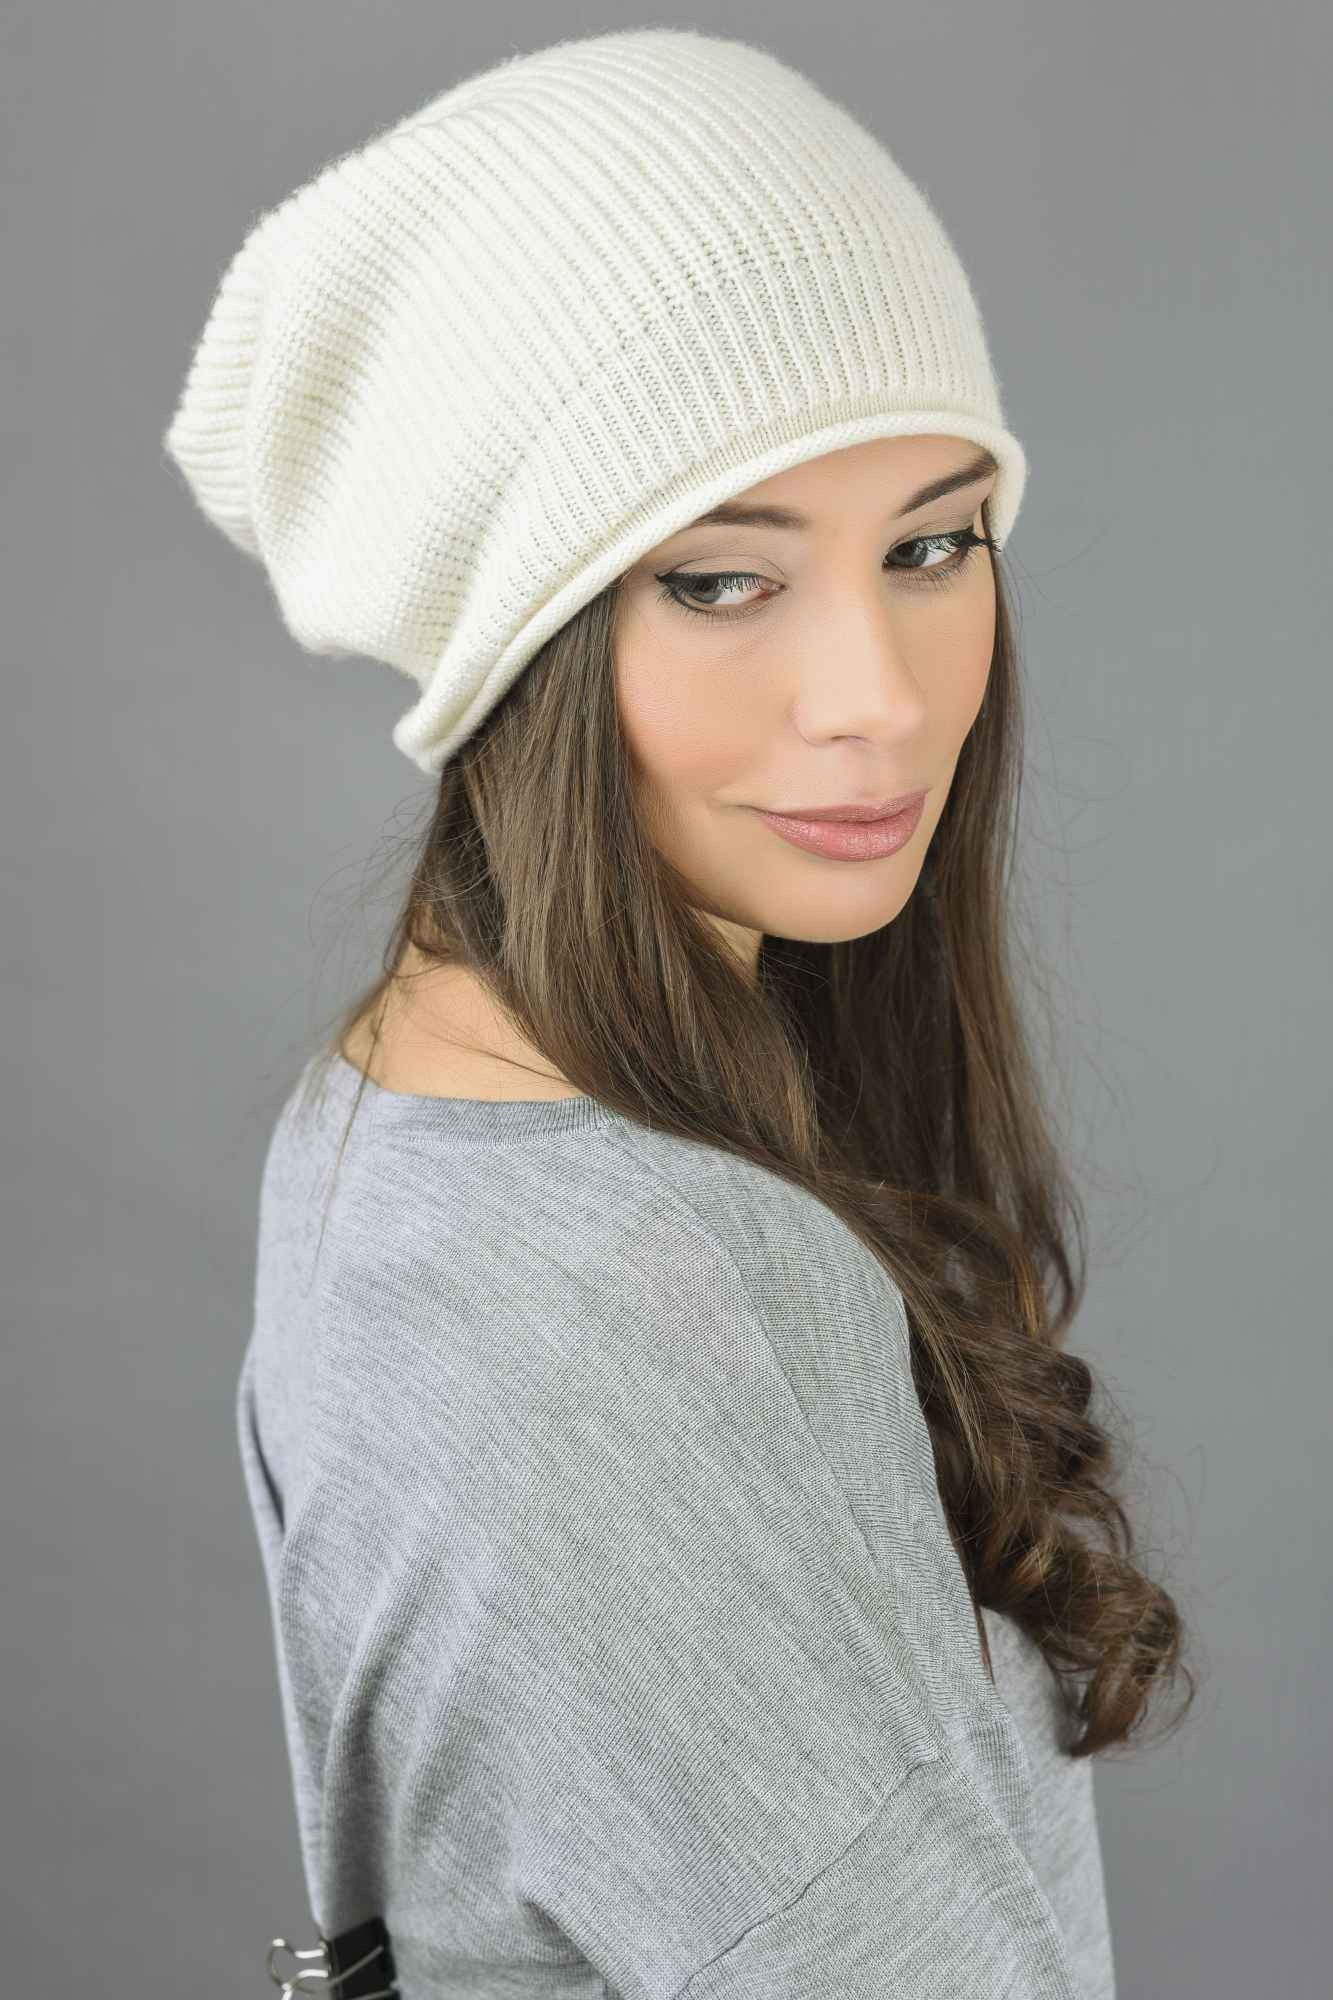 Pure Cashmere Ribbed Knitted Slouchy Beanie Hat in Cream White ... c16547f80e5